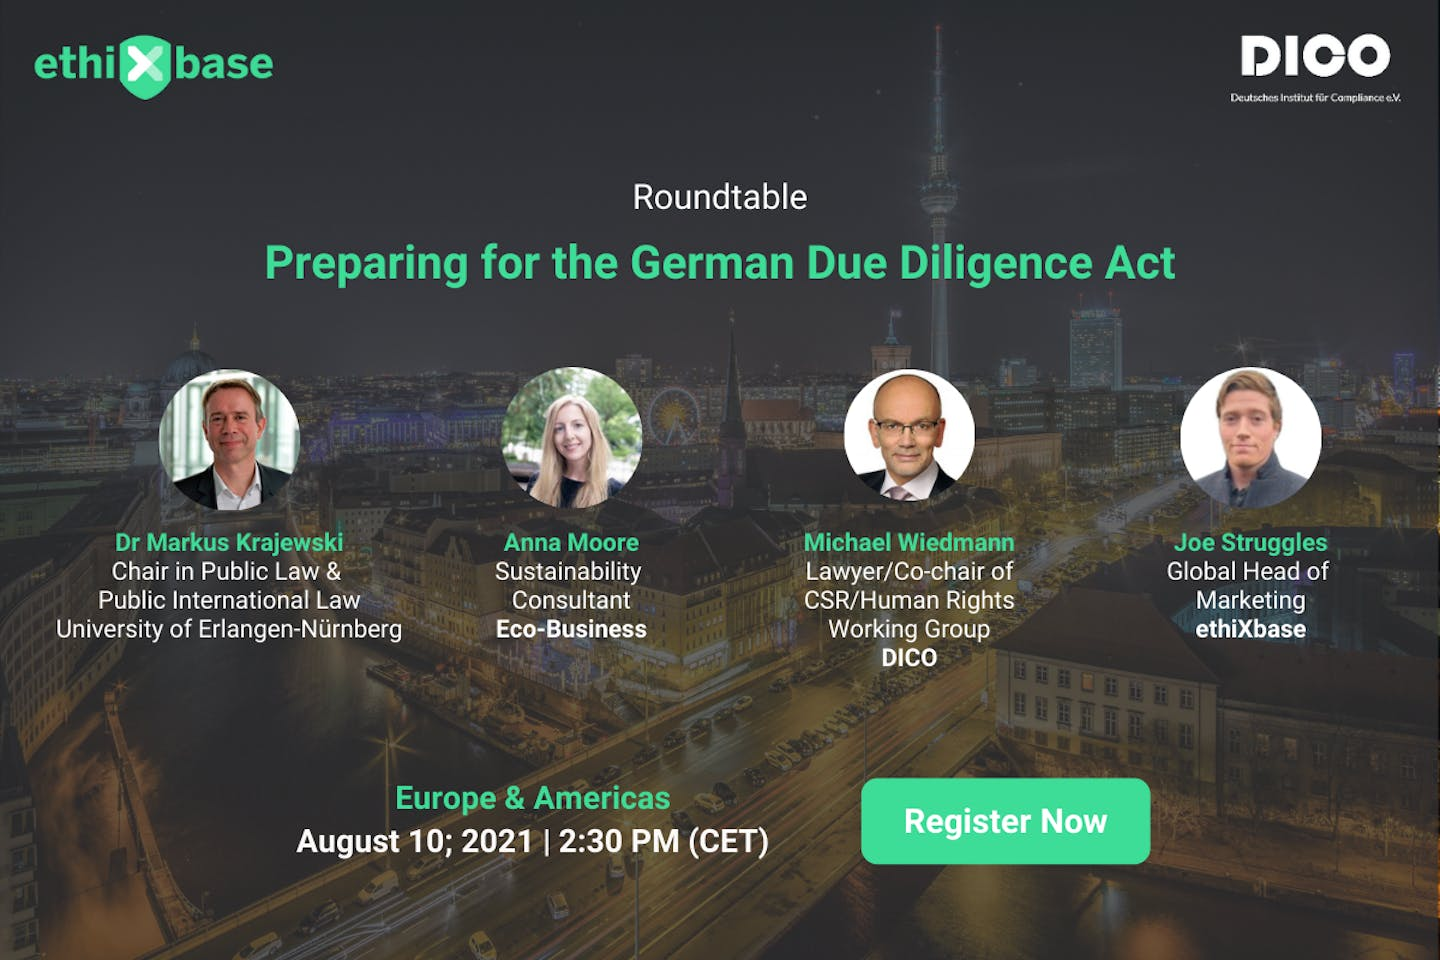 Roundtable: Preparing for the German due diligence act